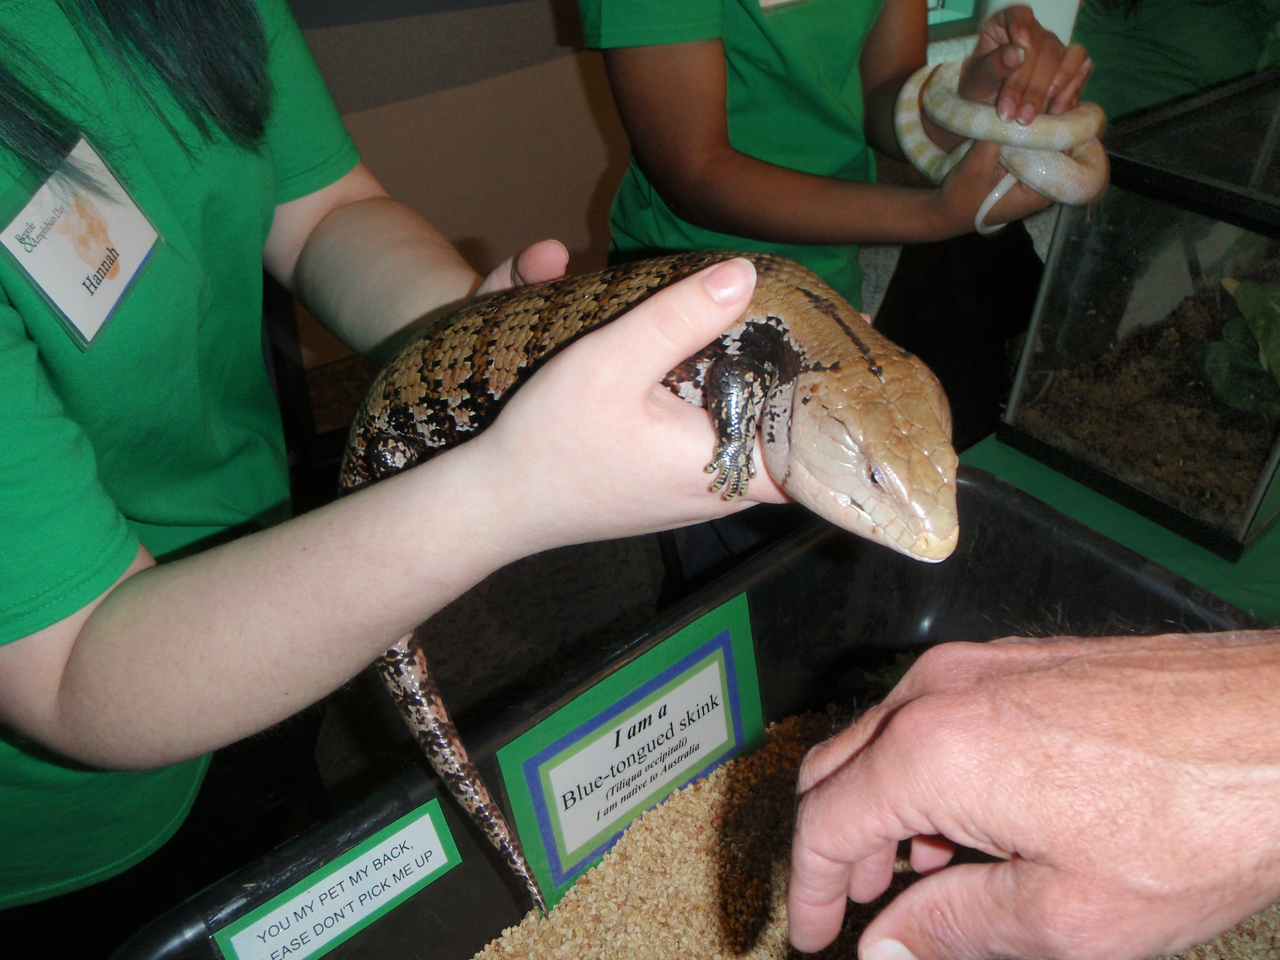 A fun reptile (skink) with a blue tongue that licks hands!